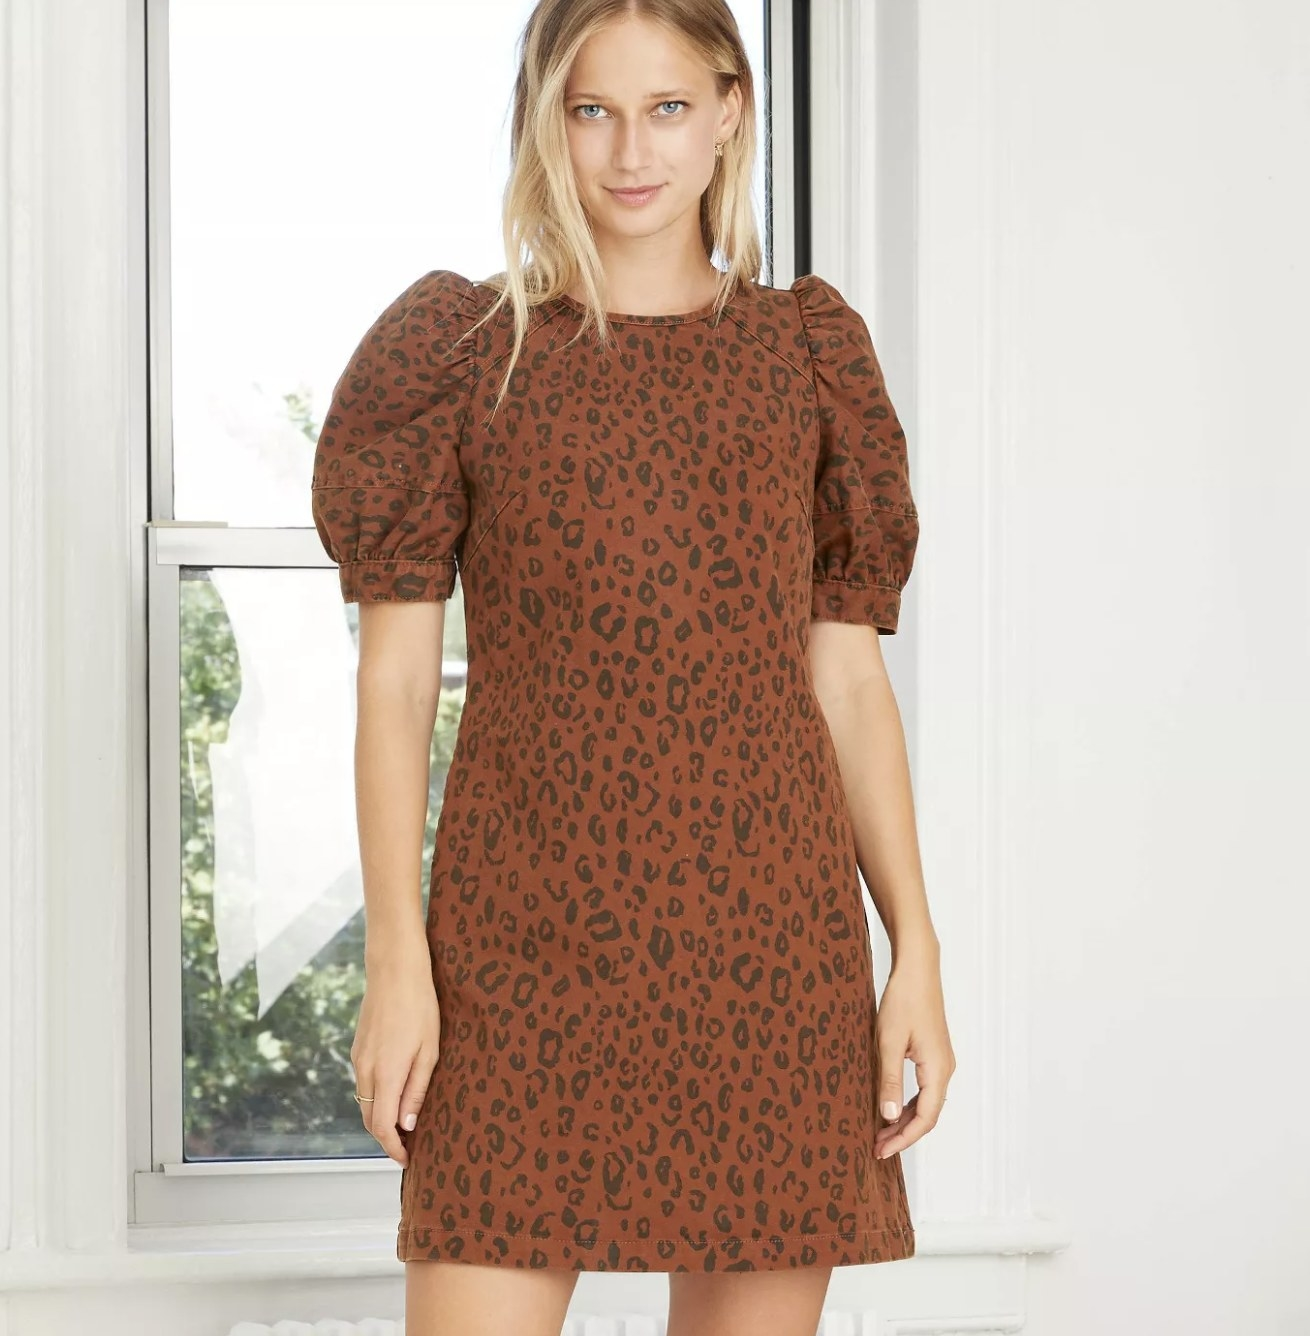 a brown structured denim dress with a chetah pattern and puff sleeves